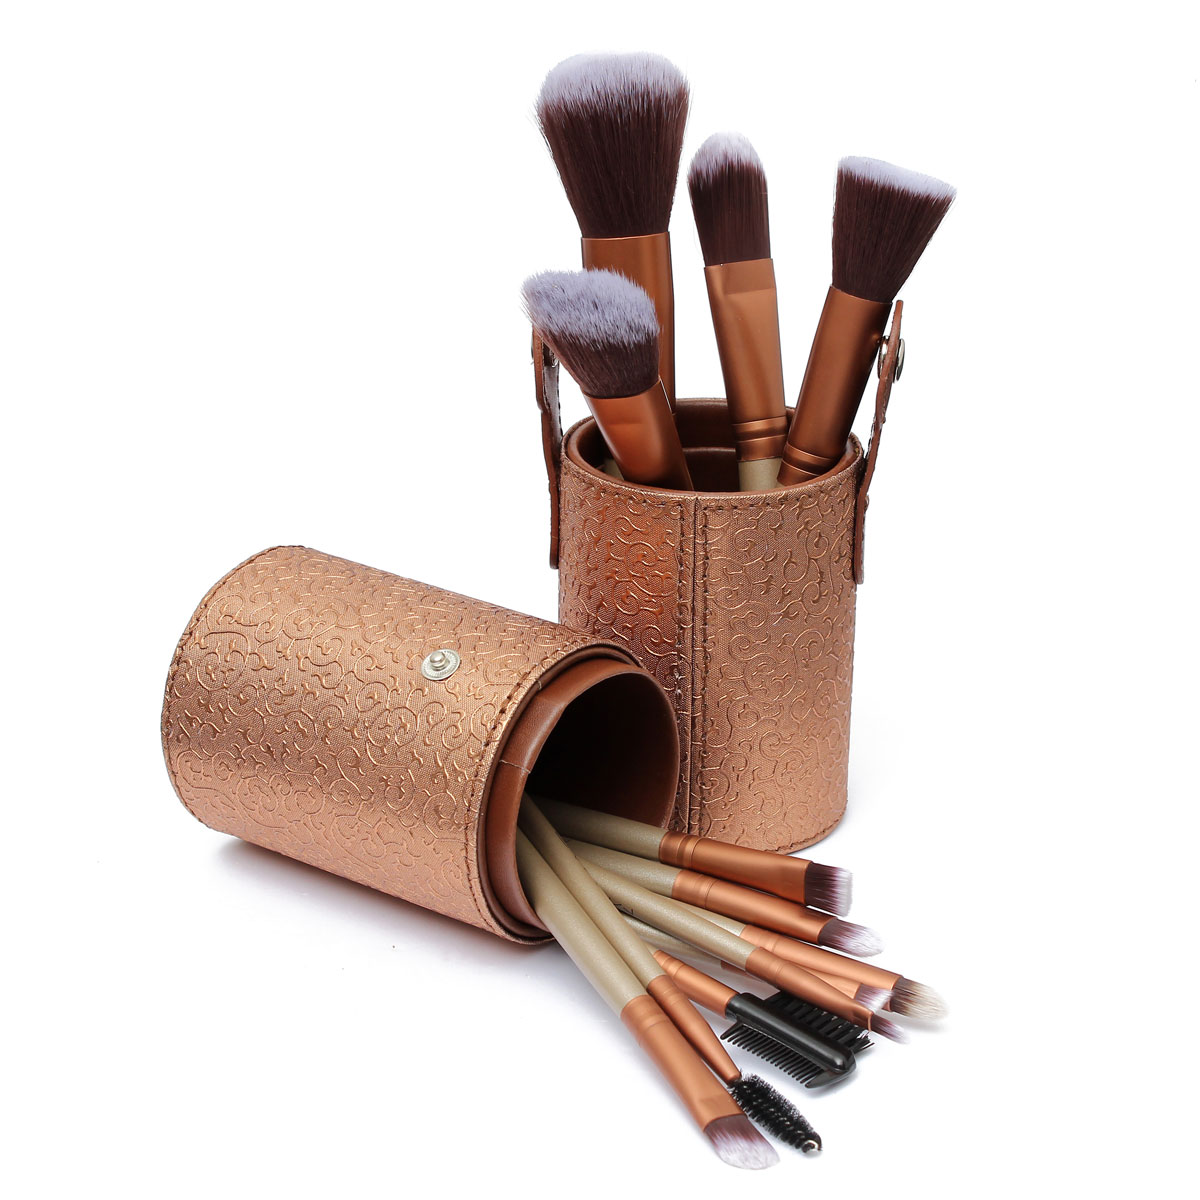 Makeup Leather Storage Empty Holder Cosmetic Cup Case For Brush Pen 8 Colors Hot